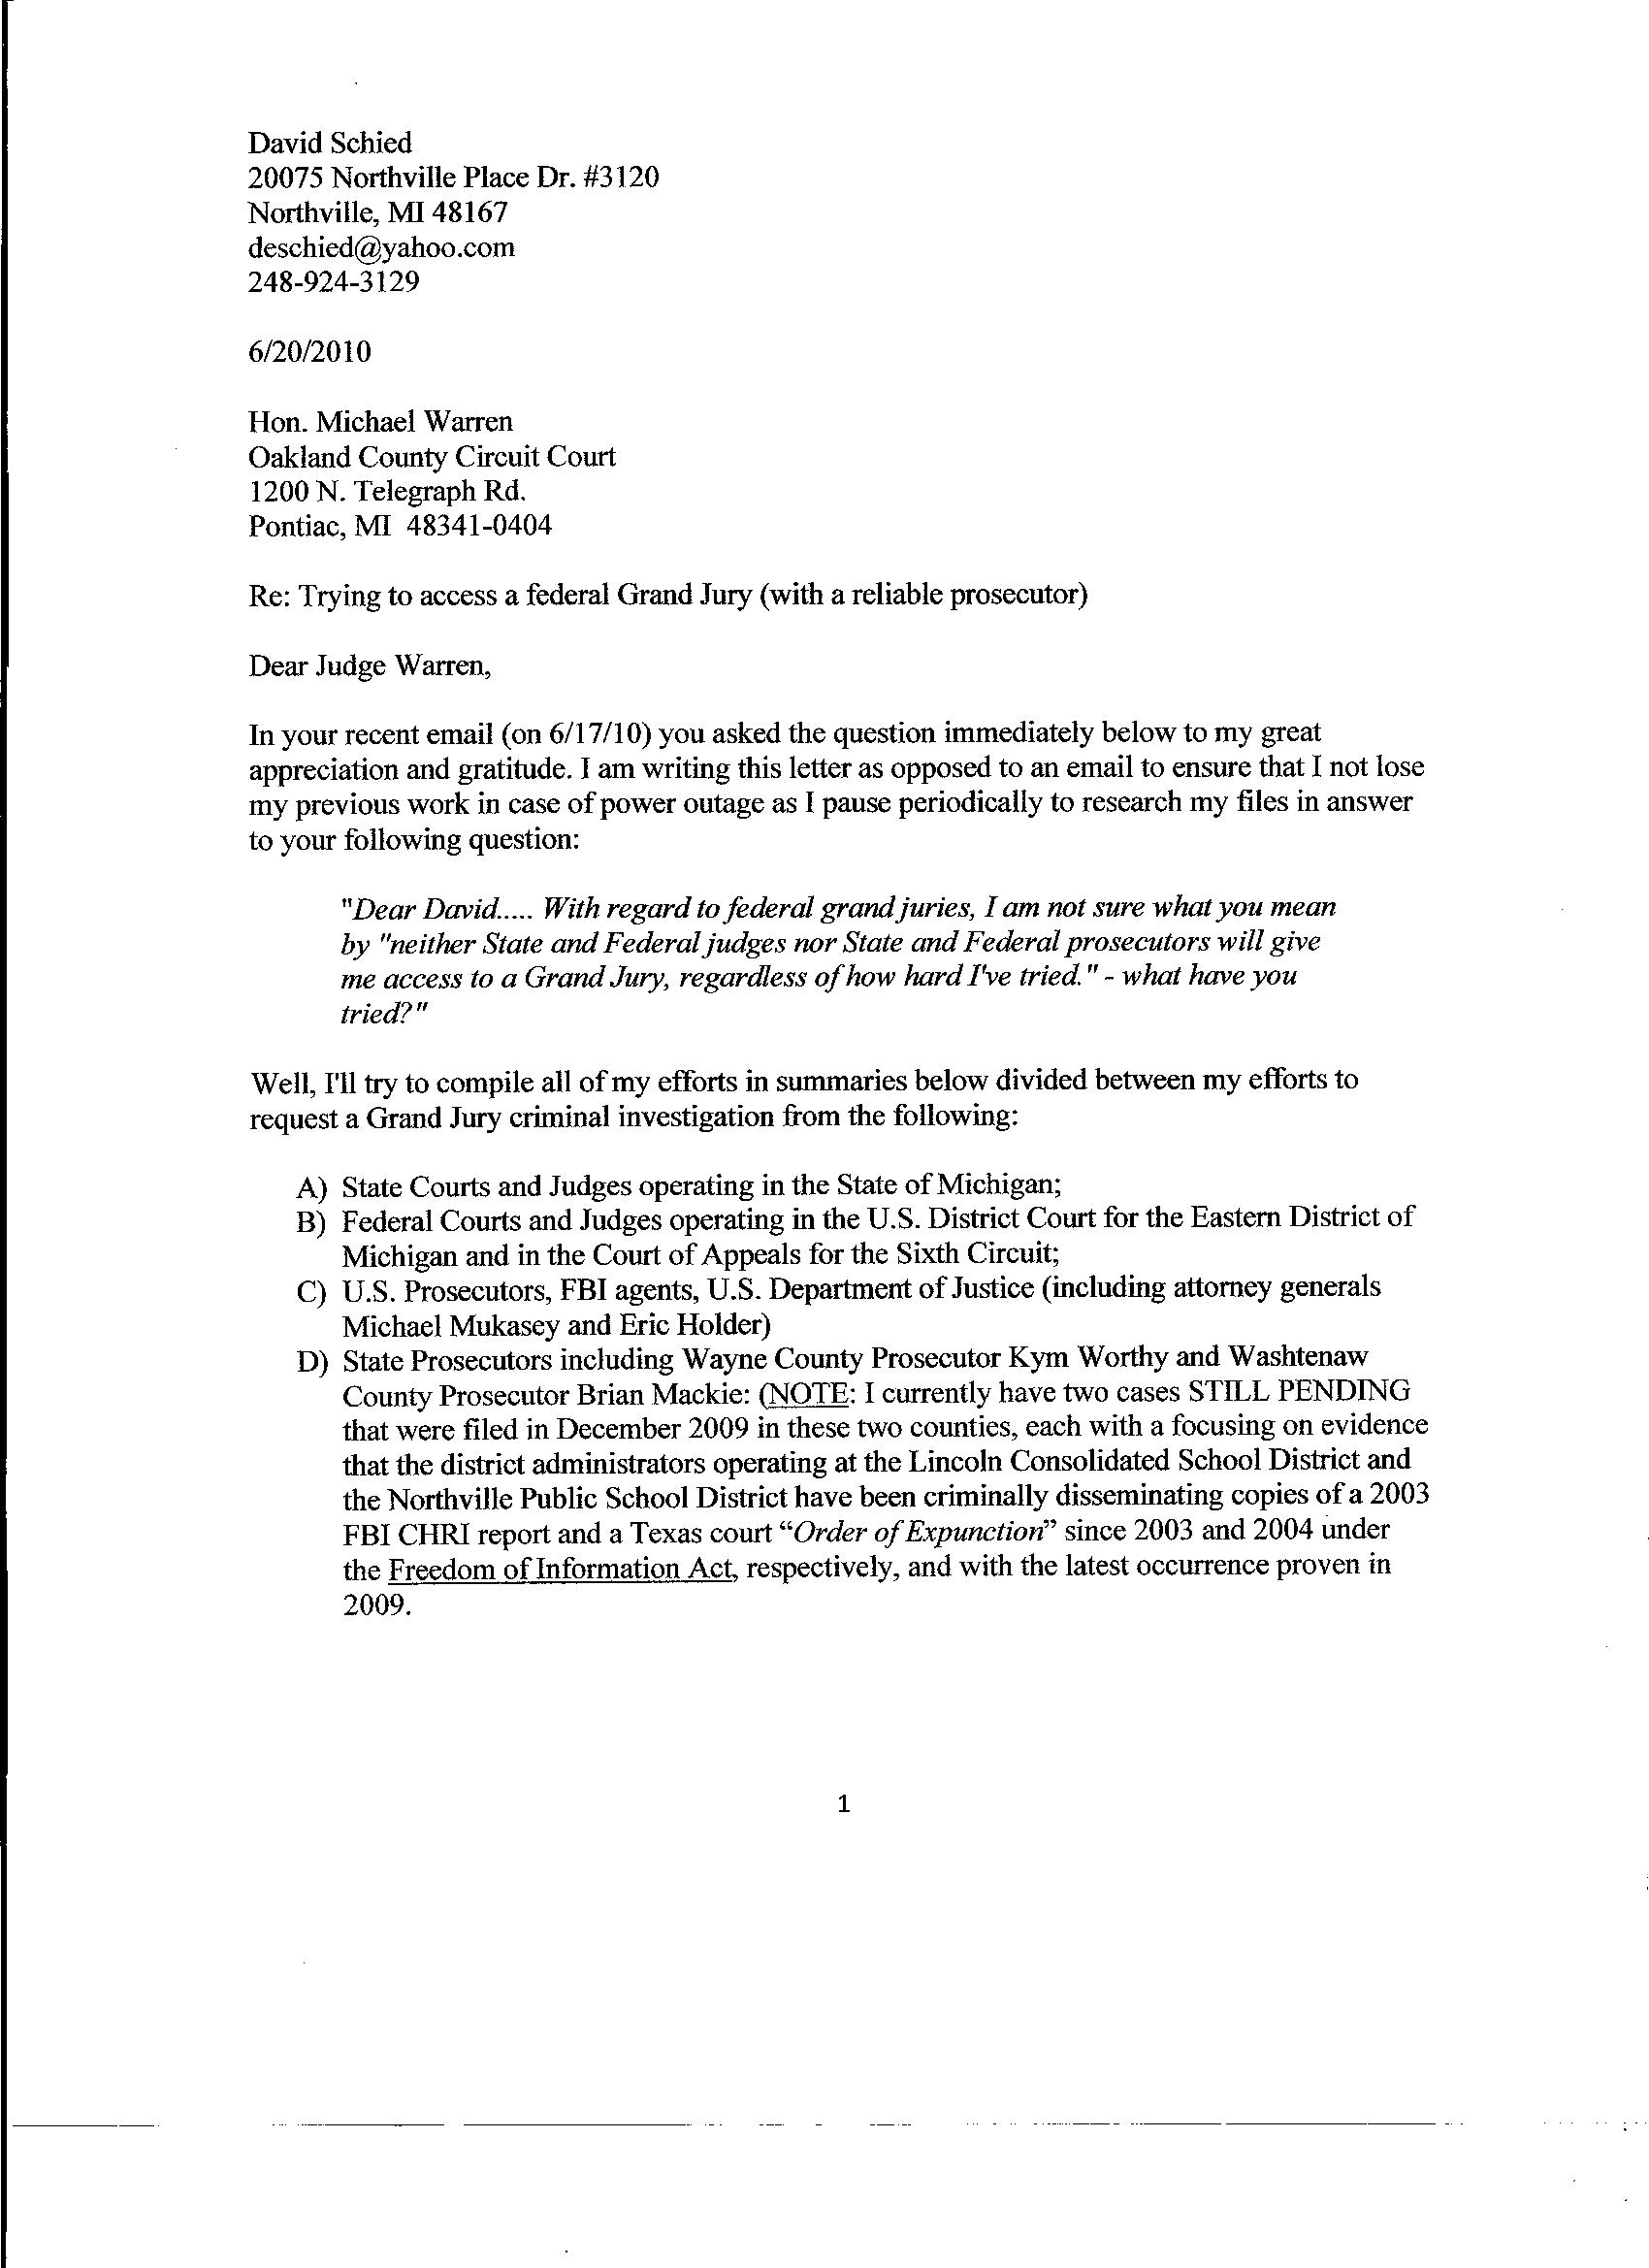 How To Write A Letter Federal Judge